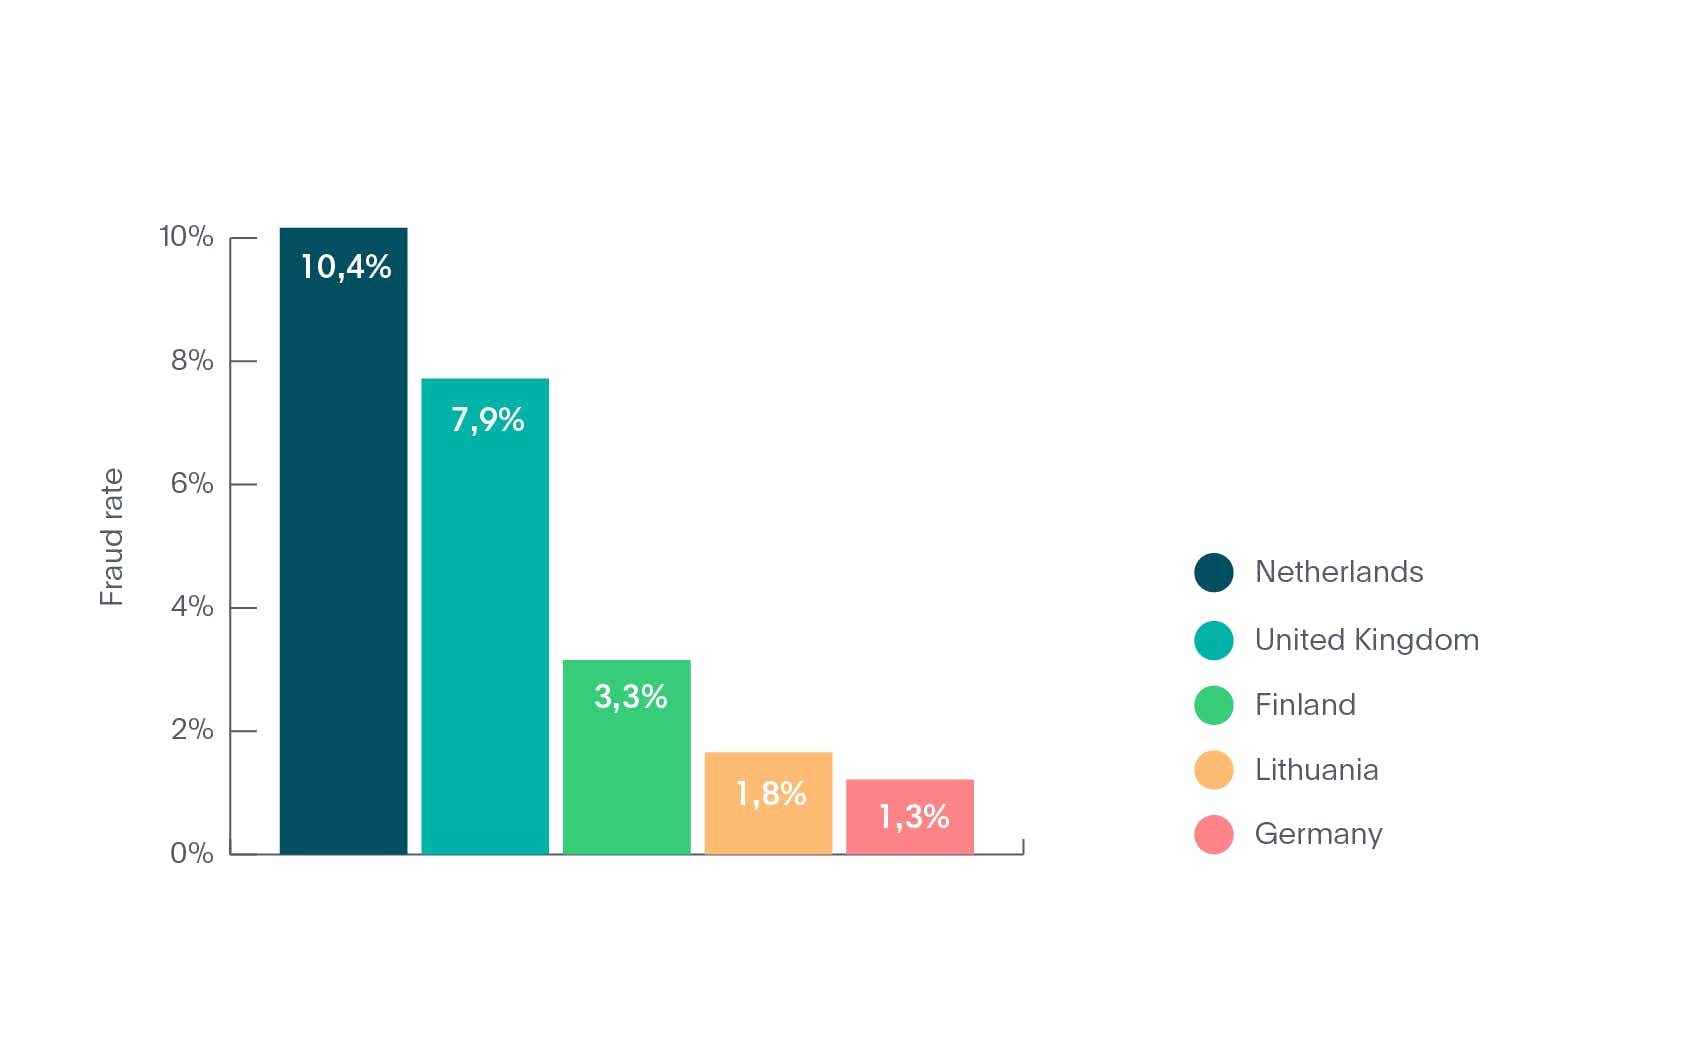 Top 5 countries for identity fraud in Mobility industry in 2020